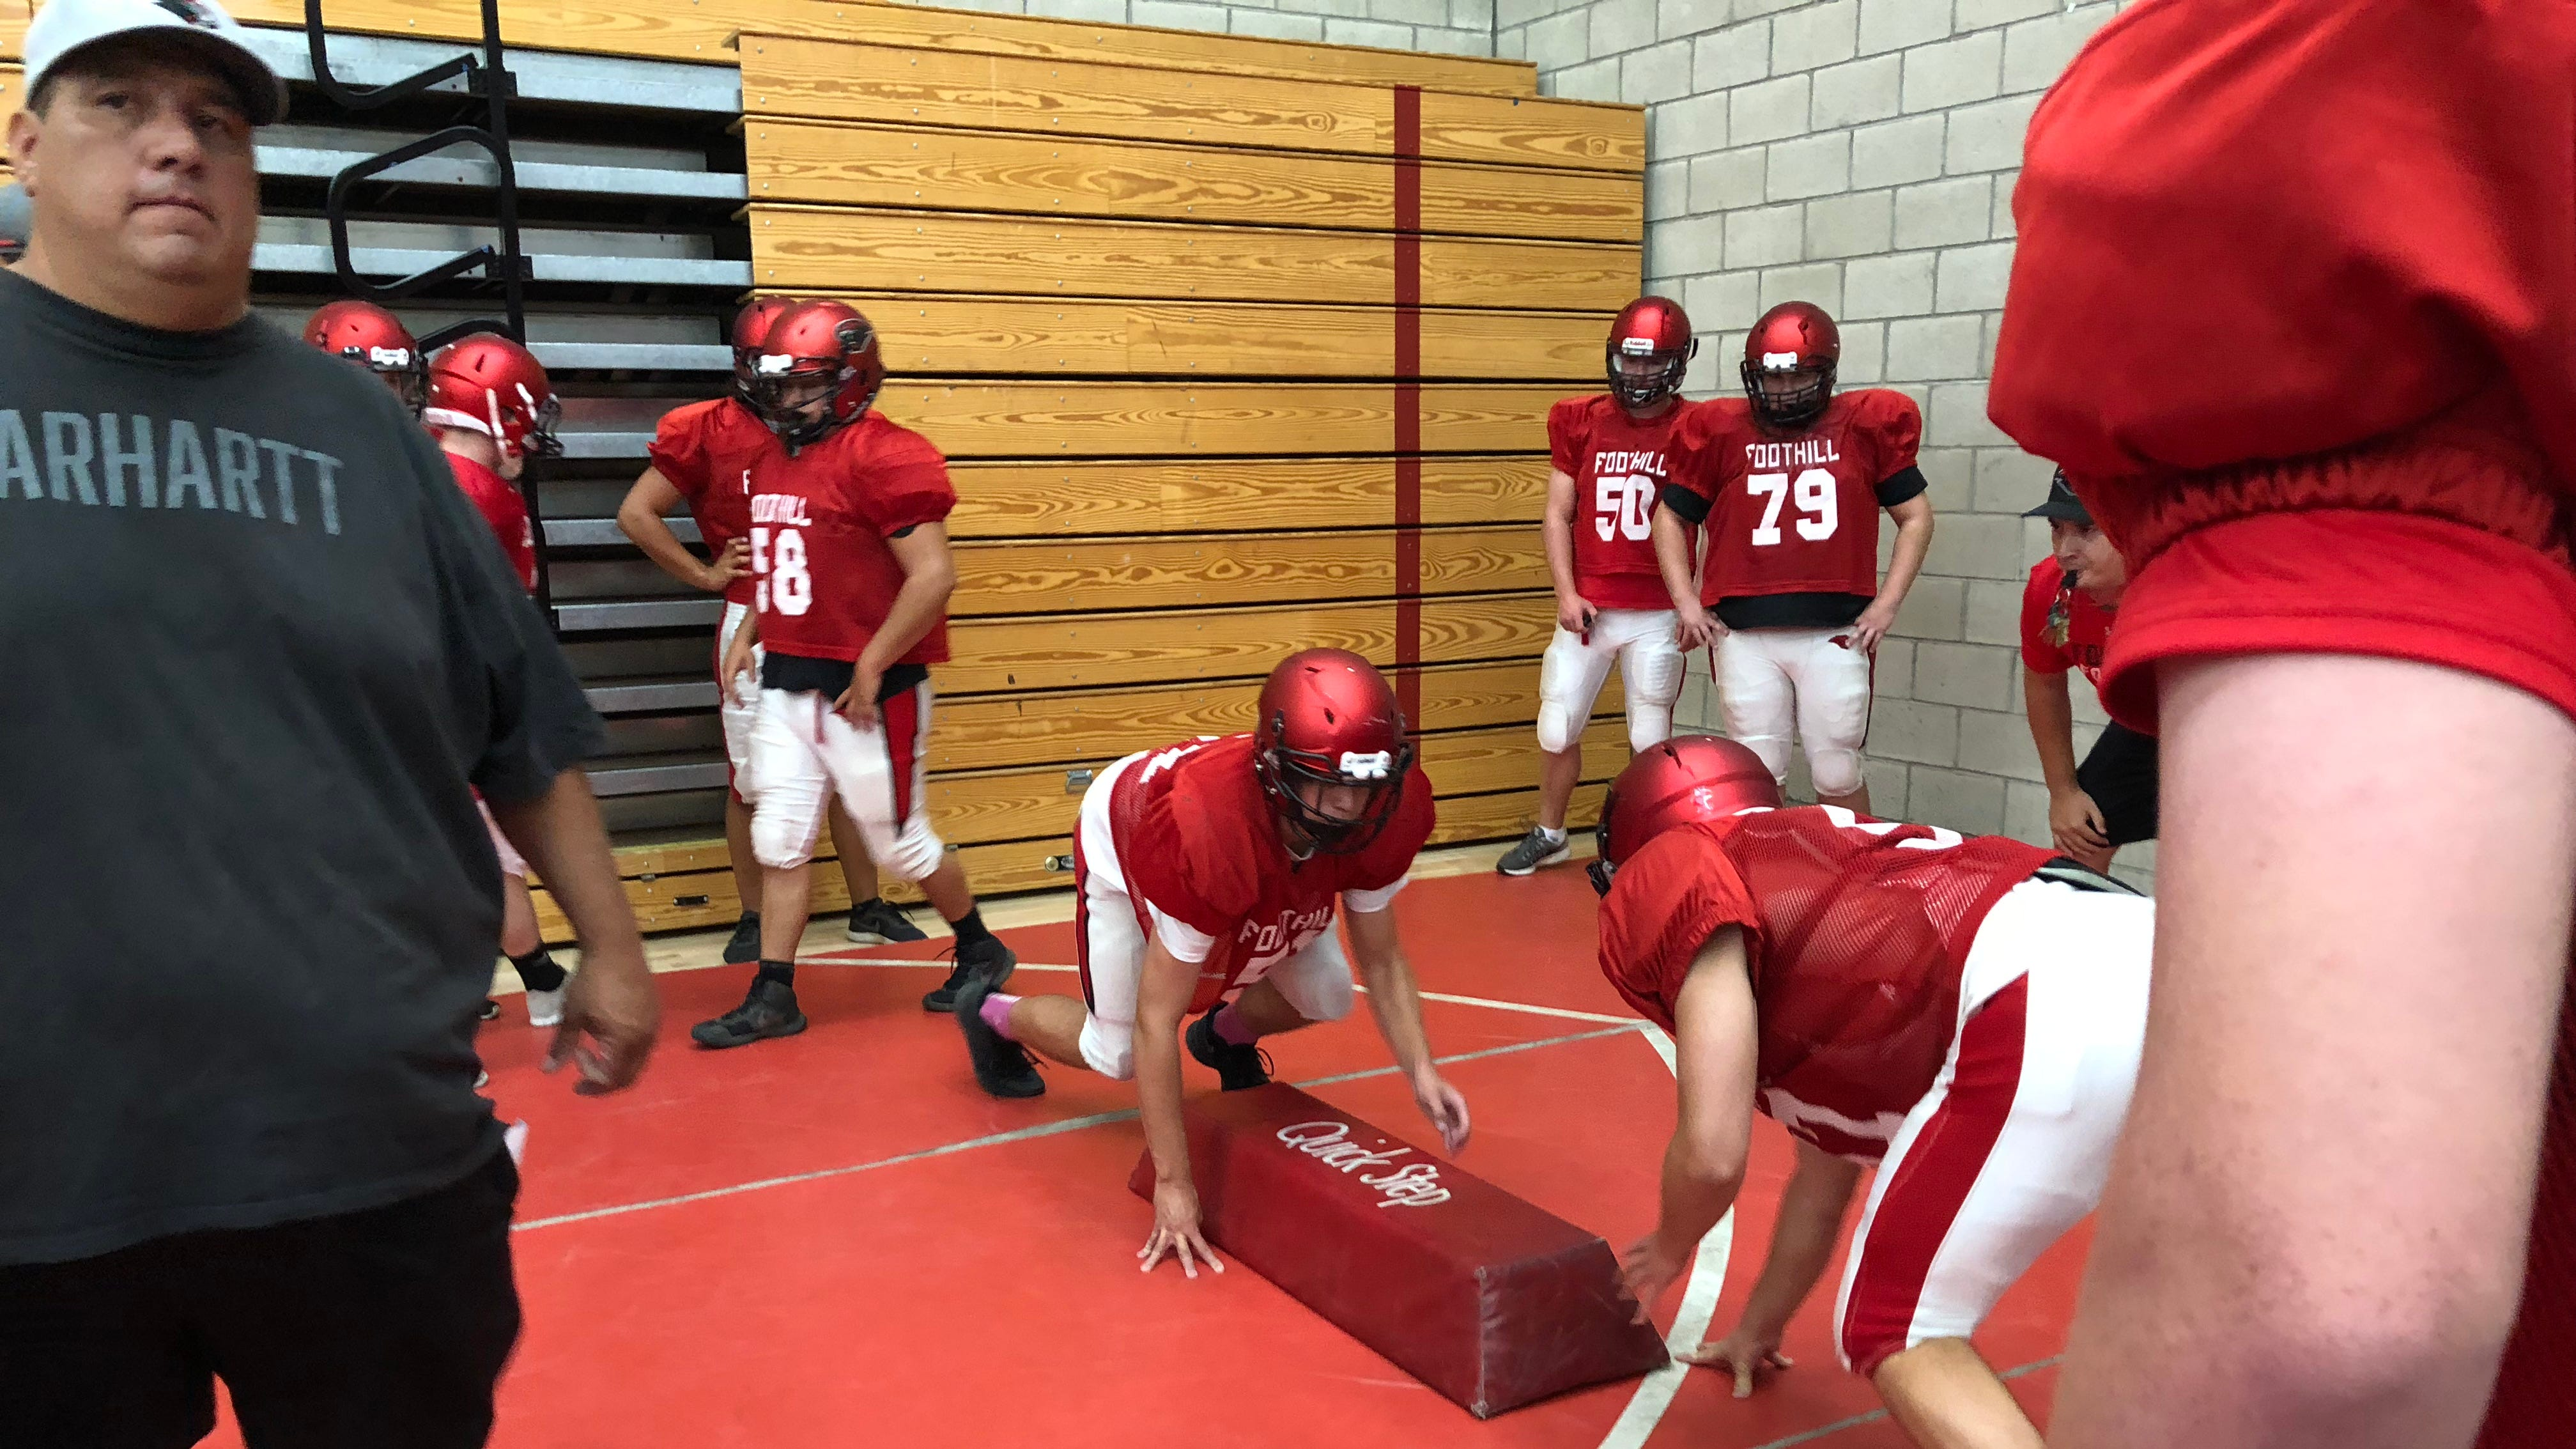 Varsity football players at Foothill High School participate in hitting drills at the start of practice on Tuesday, Aug. 7. Poor air quality due to the Carr Fire has pushed all athletics indoors in affected areas, according to Shasta and Anderson district superintendents.